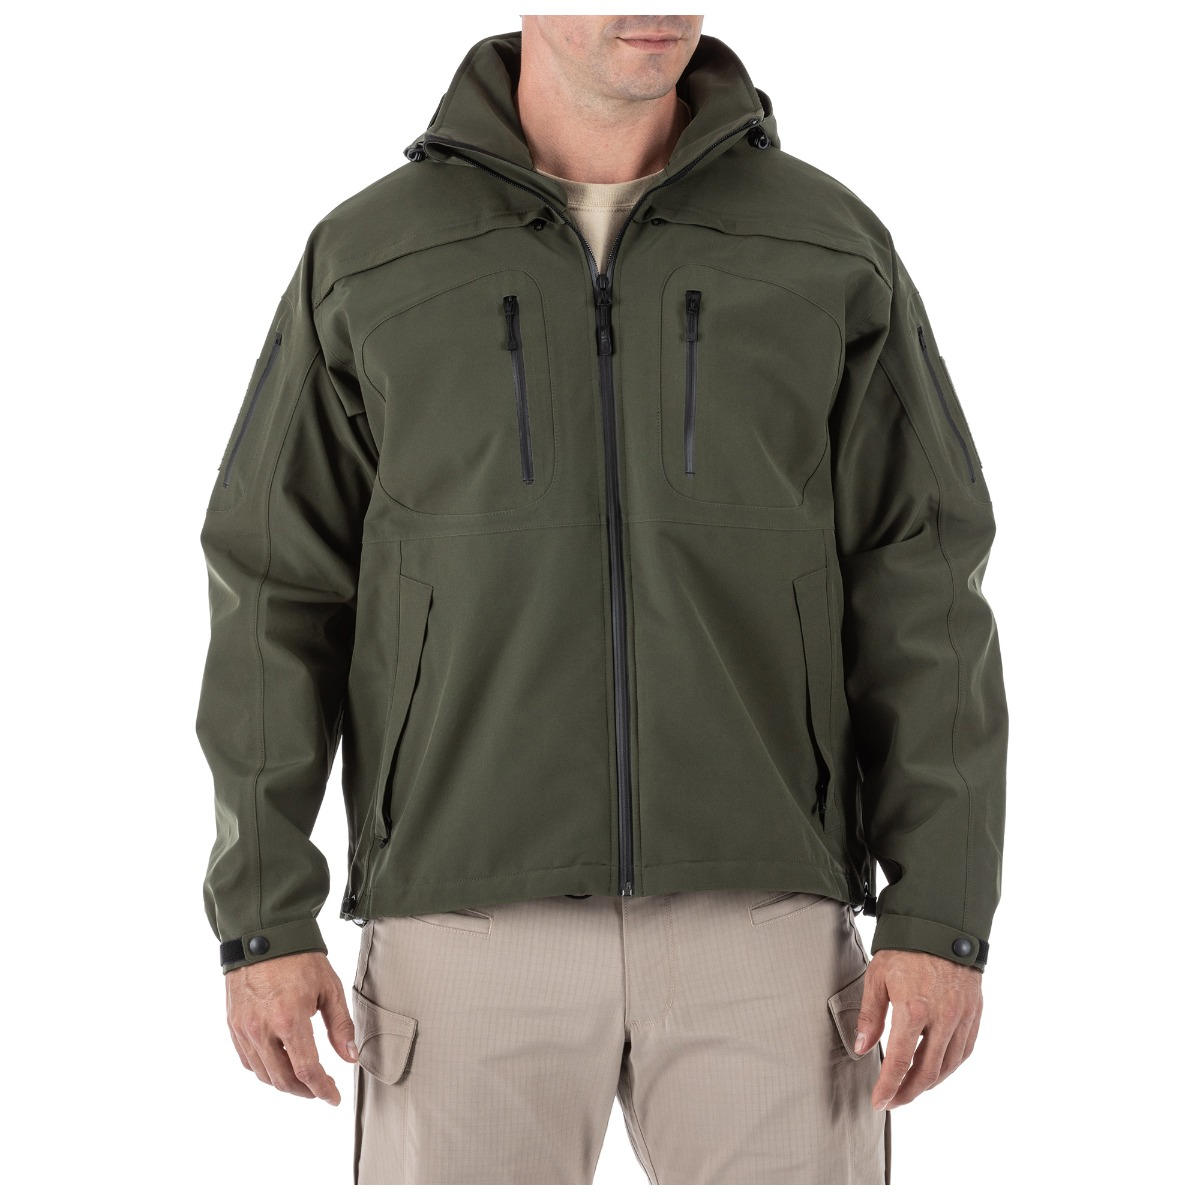 5.11 Tactical Men's Sabre Jacket 2.0 (Green), Size 3XL (CCW Concealed Carry)